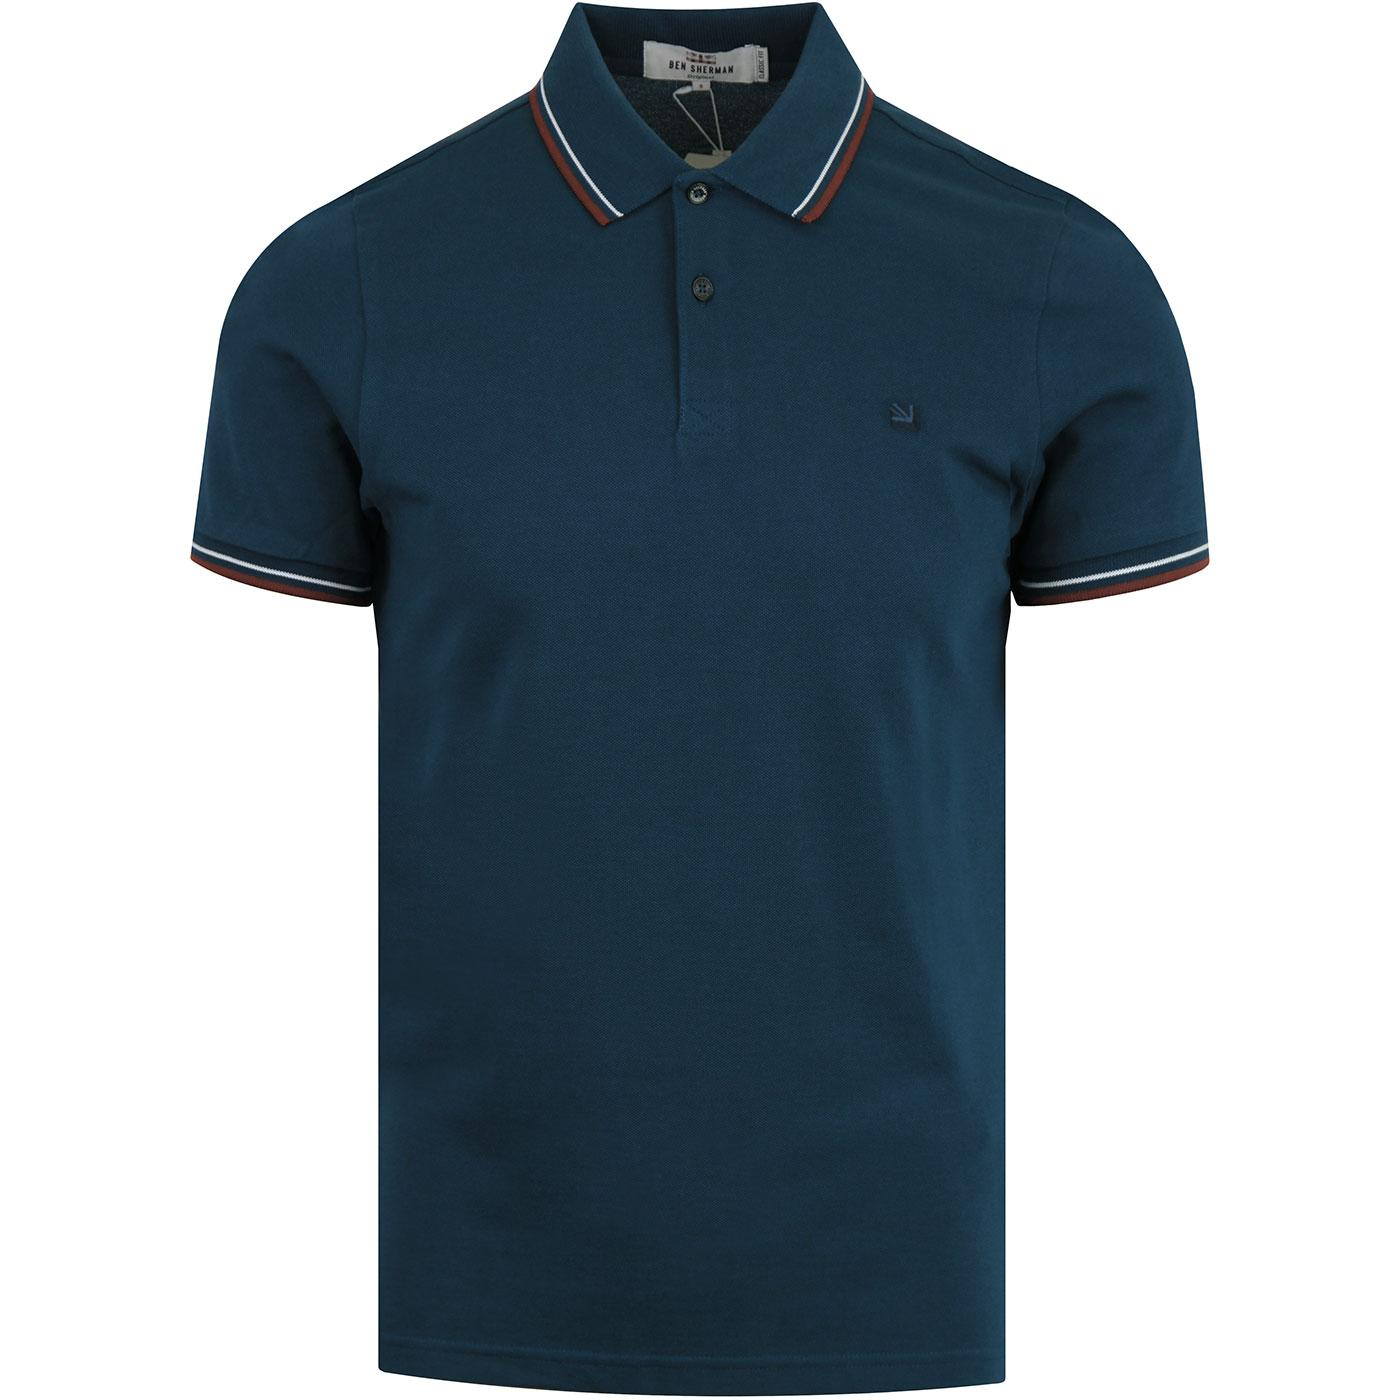 BEN SHERMAN Romford Mod Tipped Polo Top LAKE BLUE